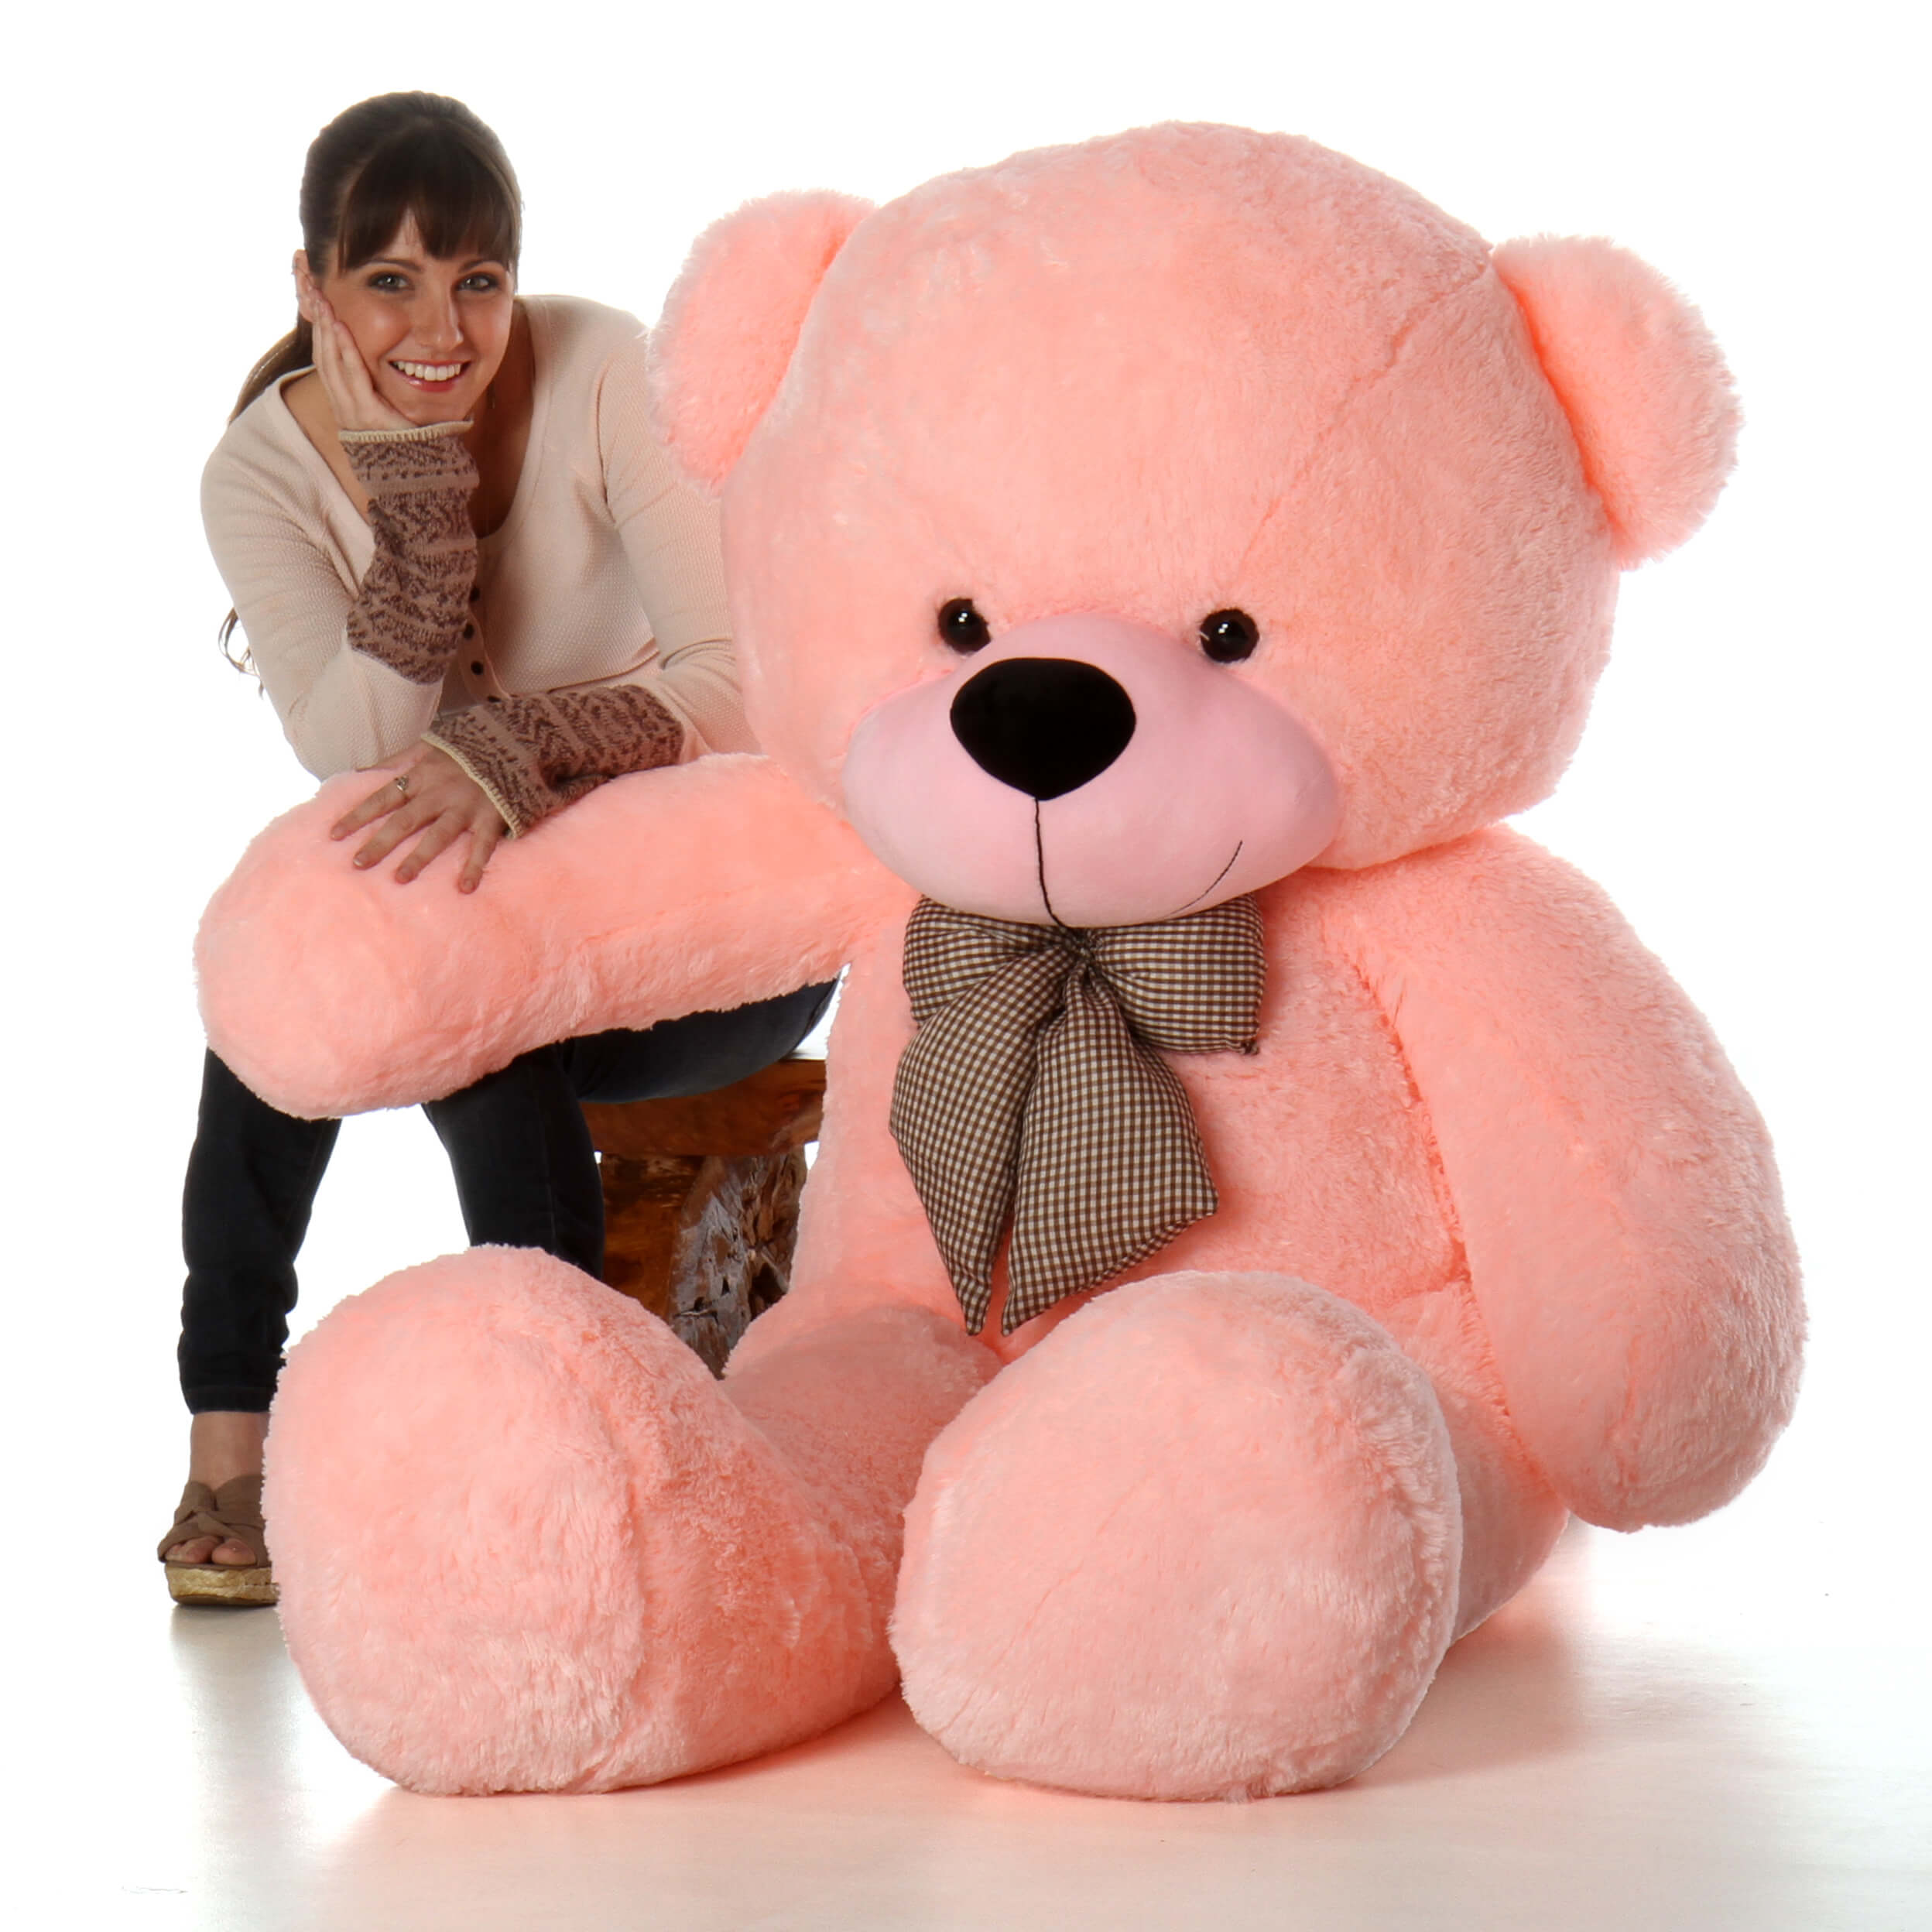 6ft Giant Life Size Pink Teddy Bear Lady Cuddles